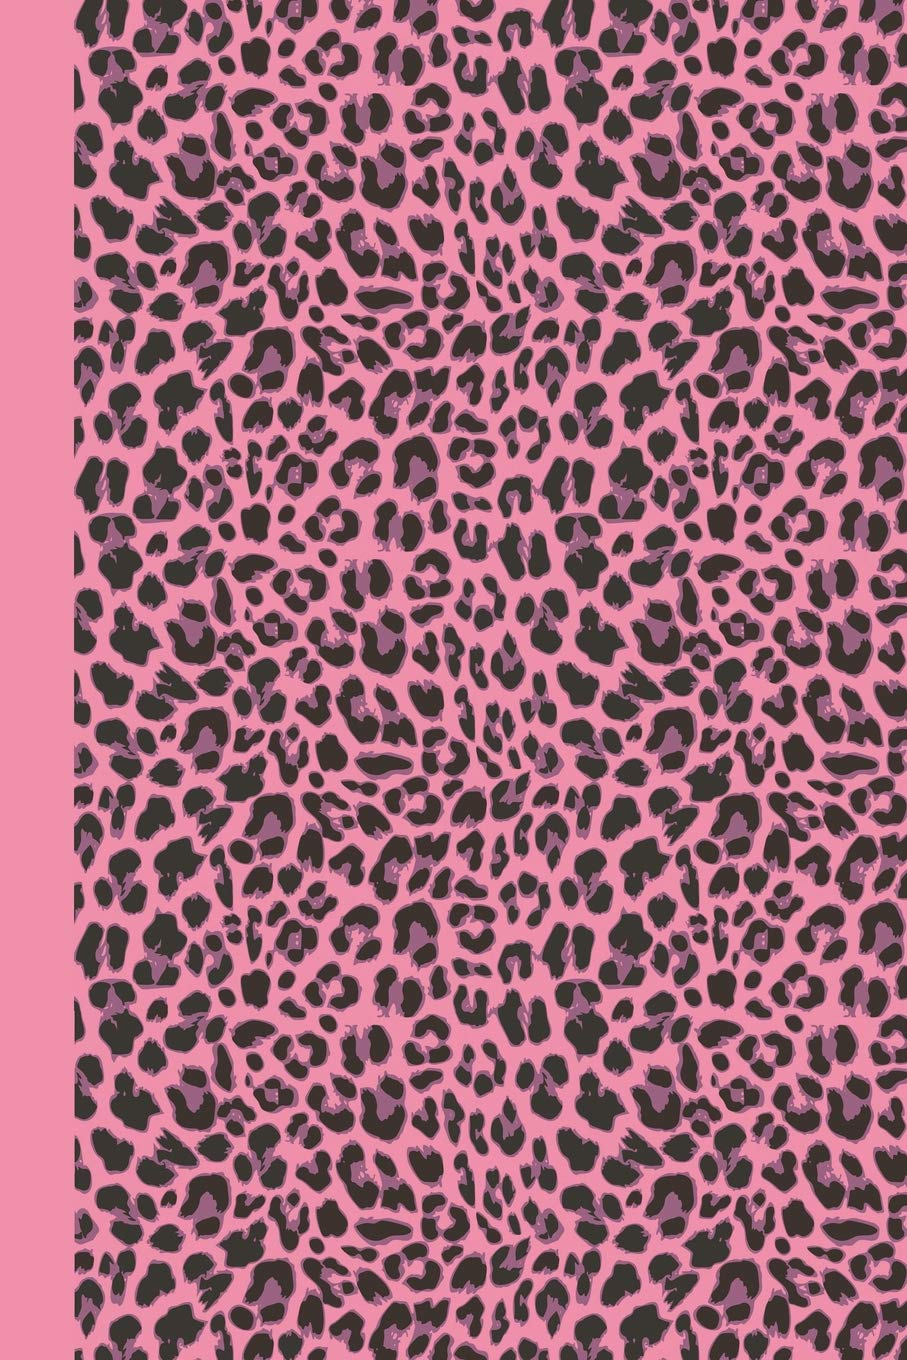 Sketchbook: Animal Print (Pink Leopard) 6x9 - BLANK JOURNAL WITH NO LINES - Journal notebook with unlined pages for drawing and writing on blank paper (Animal Print Sketchbook Series) pdf